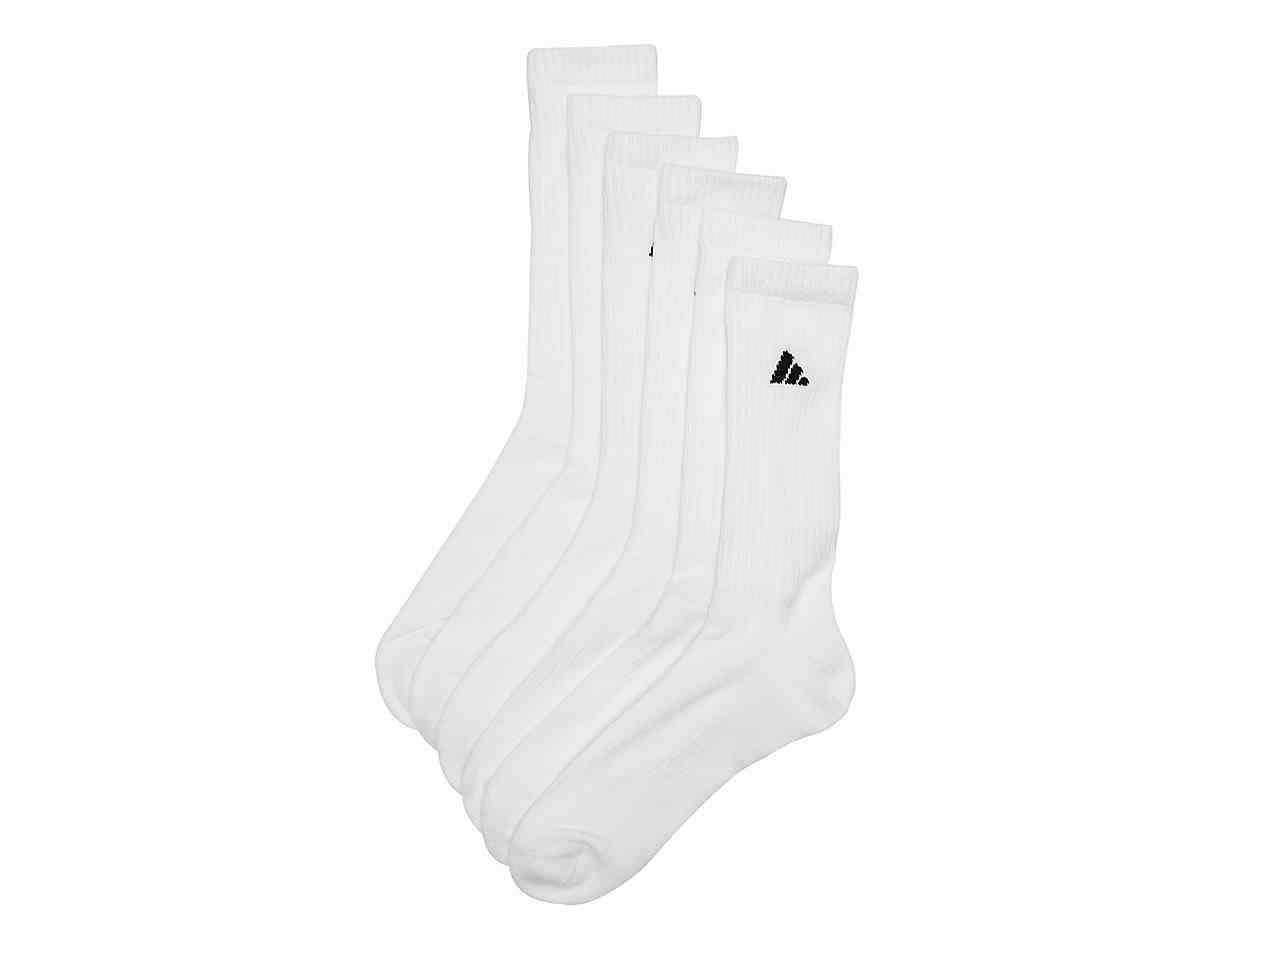 adidas Originals Men's Cushioned White & Black